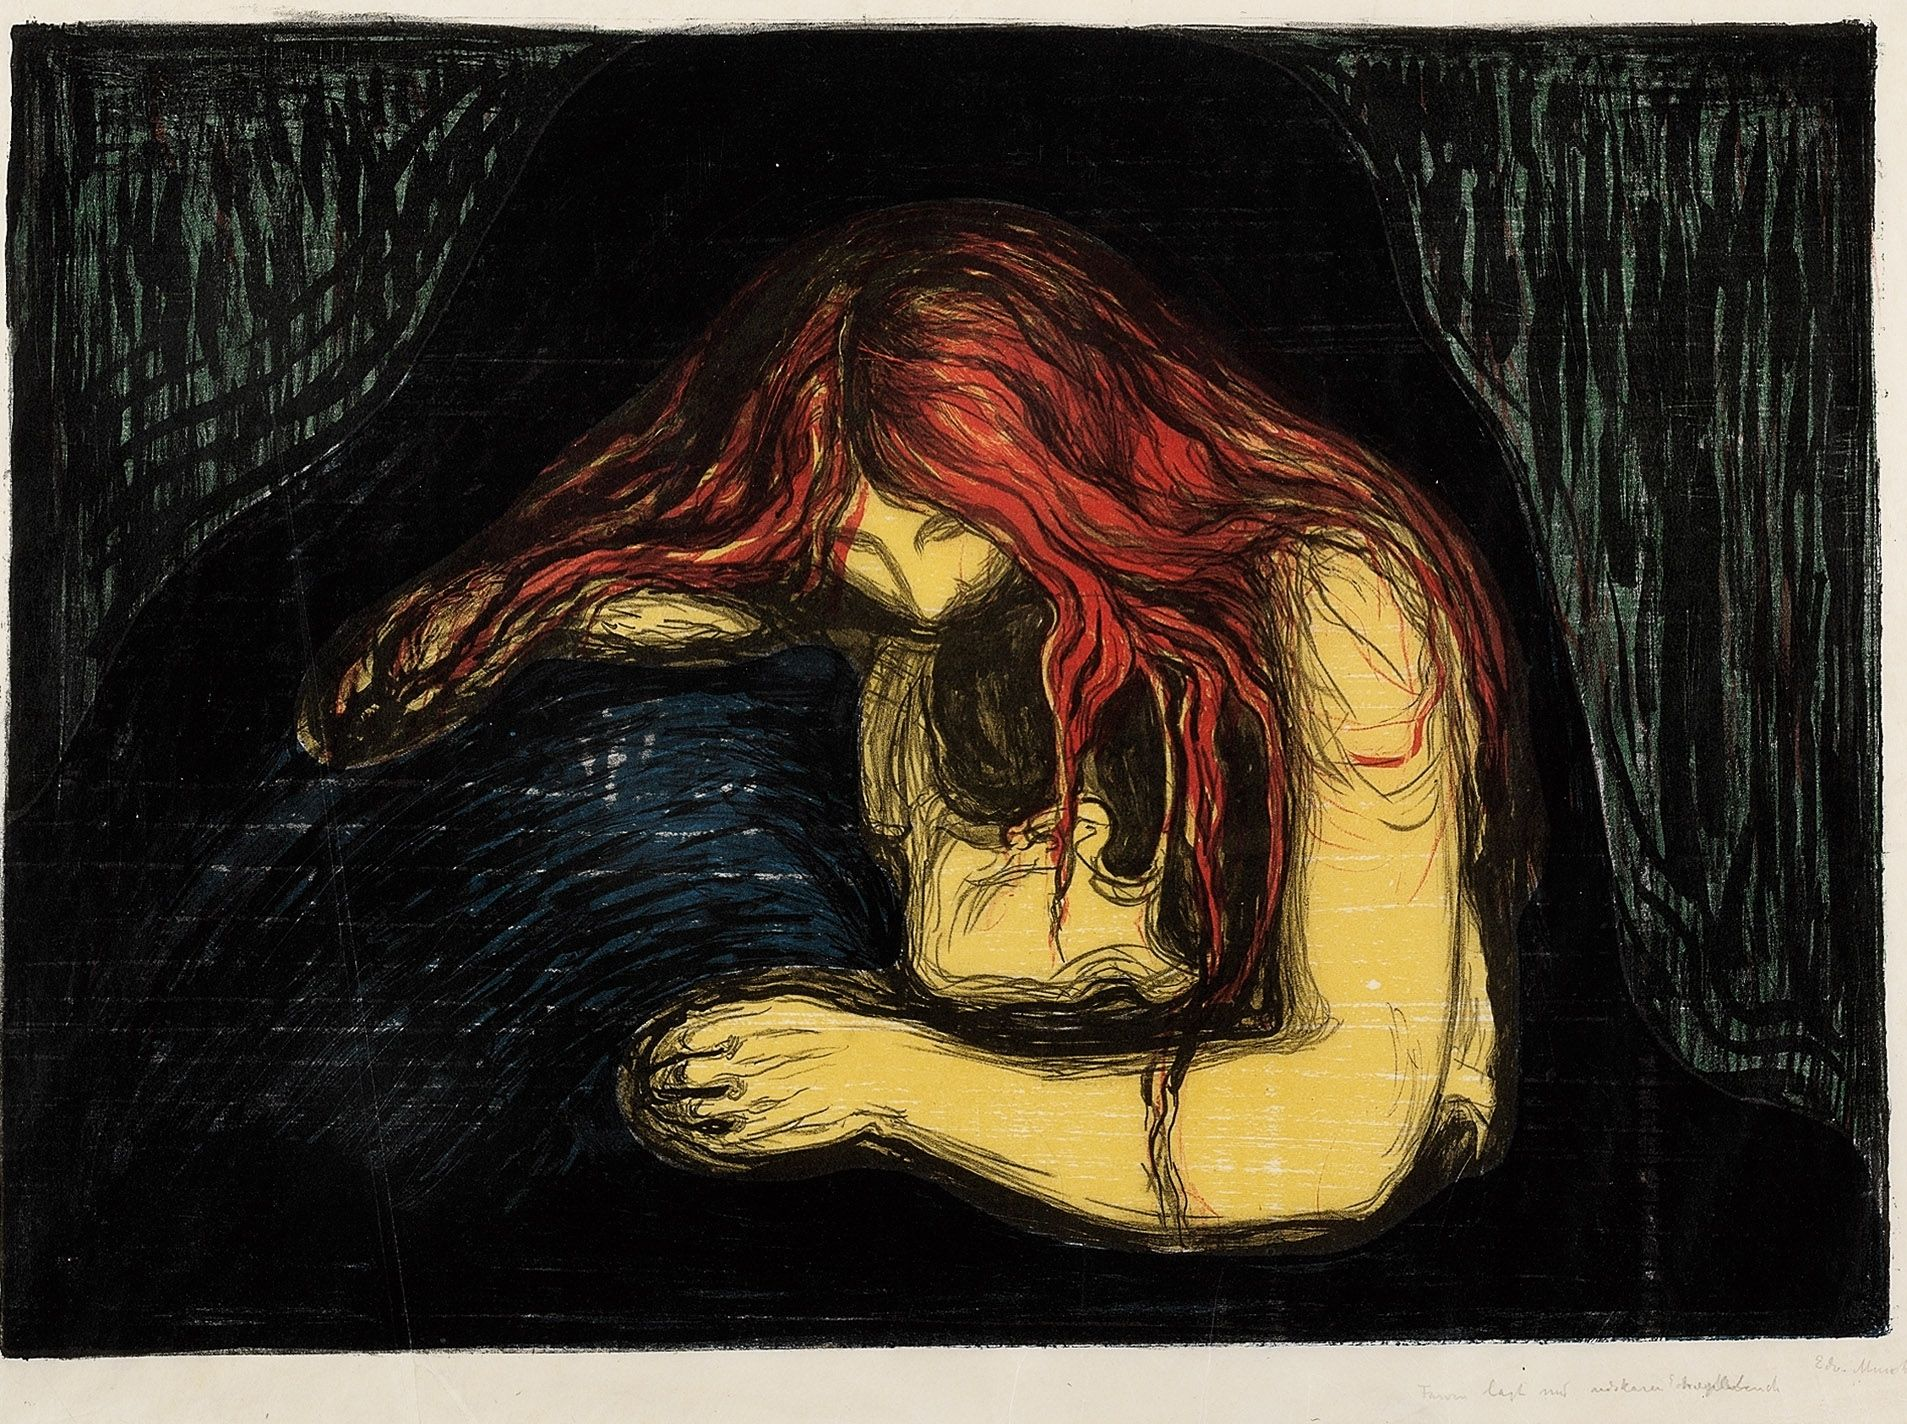 Munch, Edvard (1863-1944) Vampire IIColour lithograph and colour woodcut printed in black, red (lithograph), blue, green, orange (woodcut) on thin Japan paper. Very strong colours,  Sheet: 504x587-595 mm Image: 385x554 mm Signed twice in pencil lower right: Edv. Munch